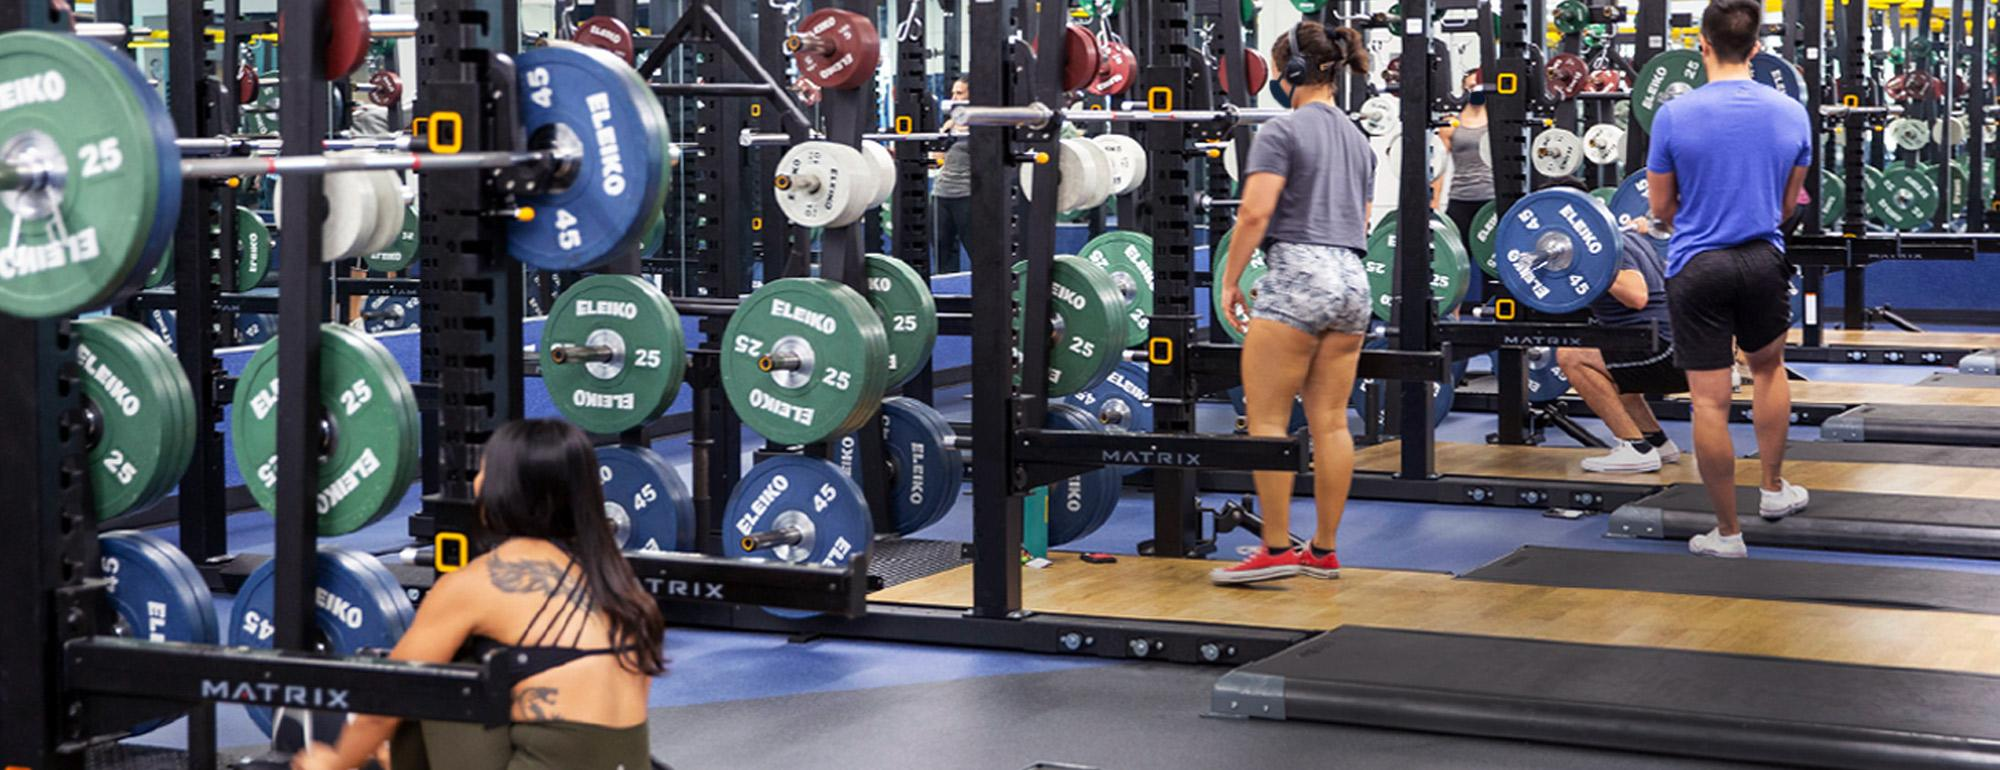 Image of students using weight lifting equipment in the ARC